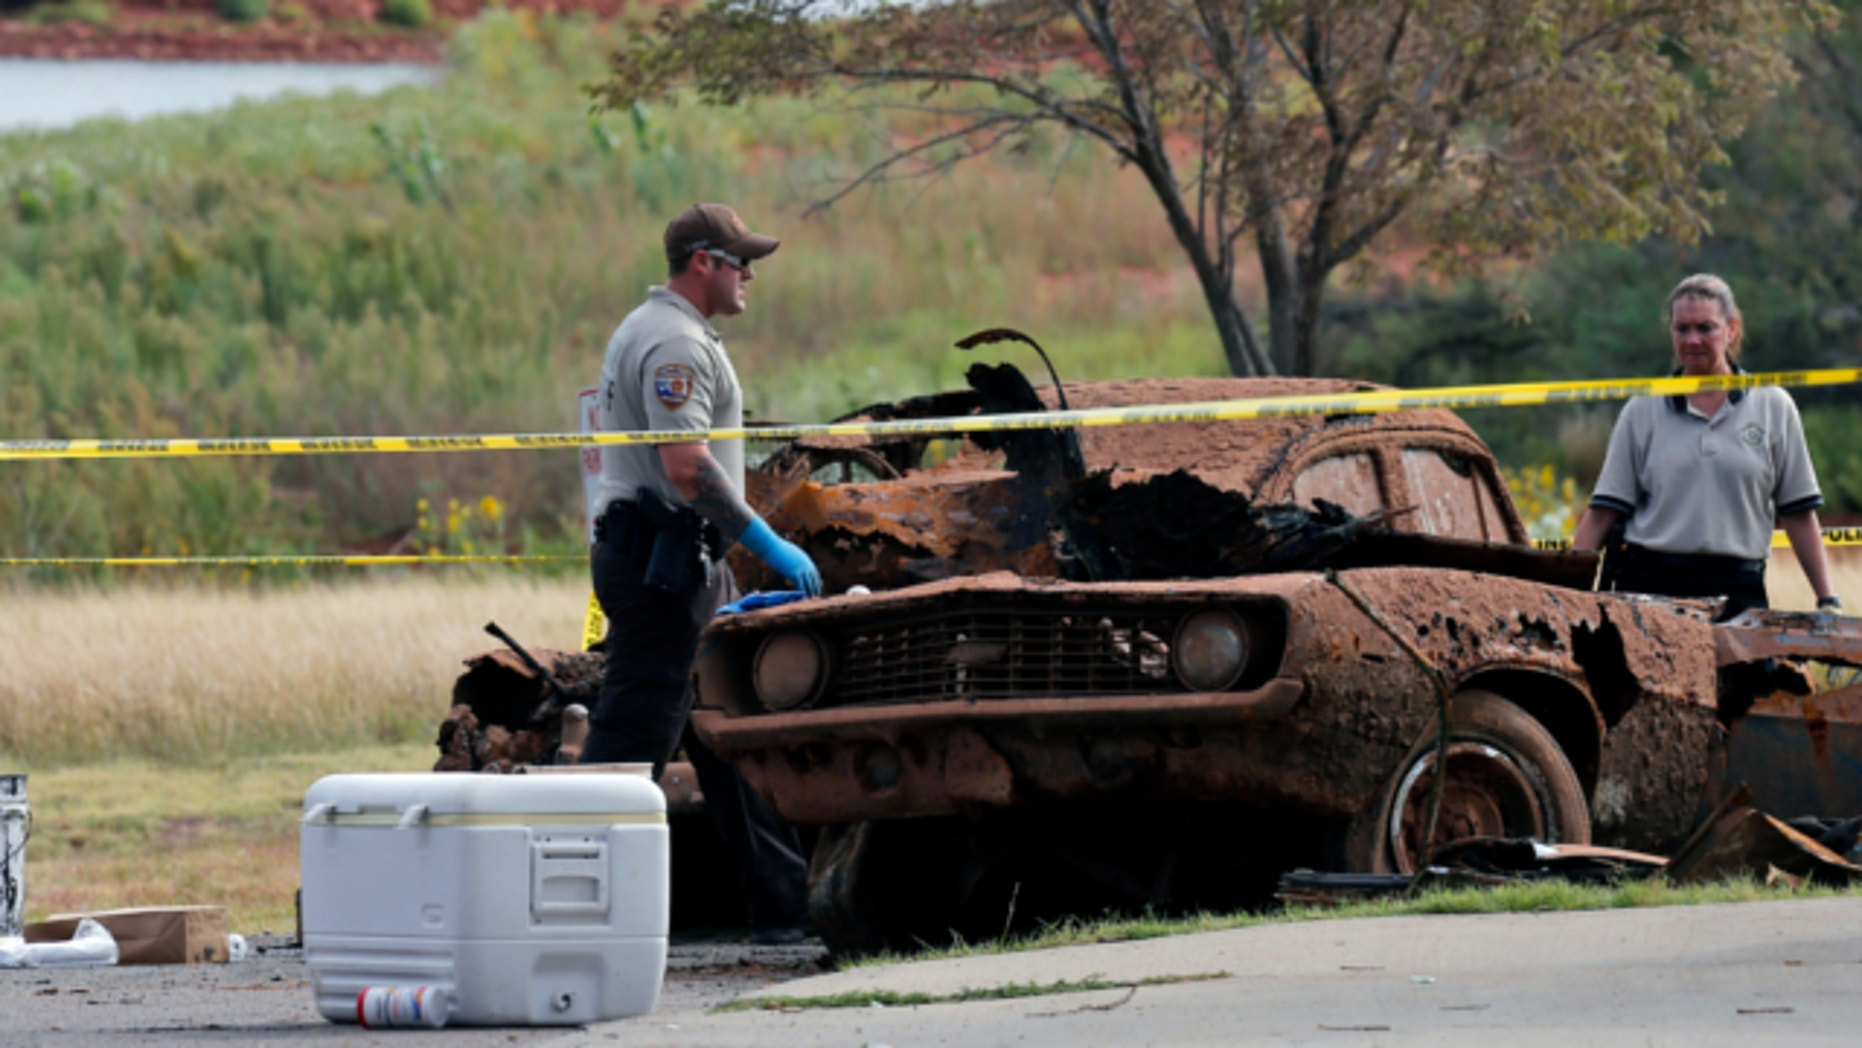 Submerged cars found in Oklahoma may solve decades-old cold